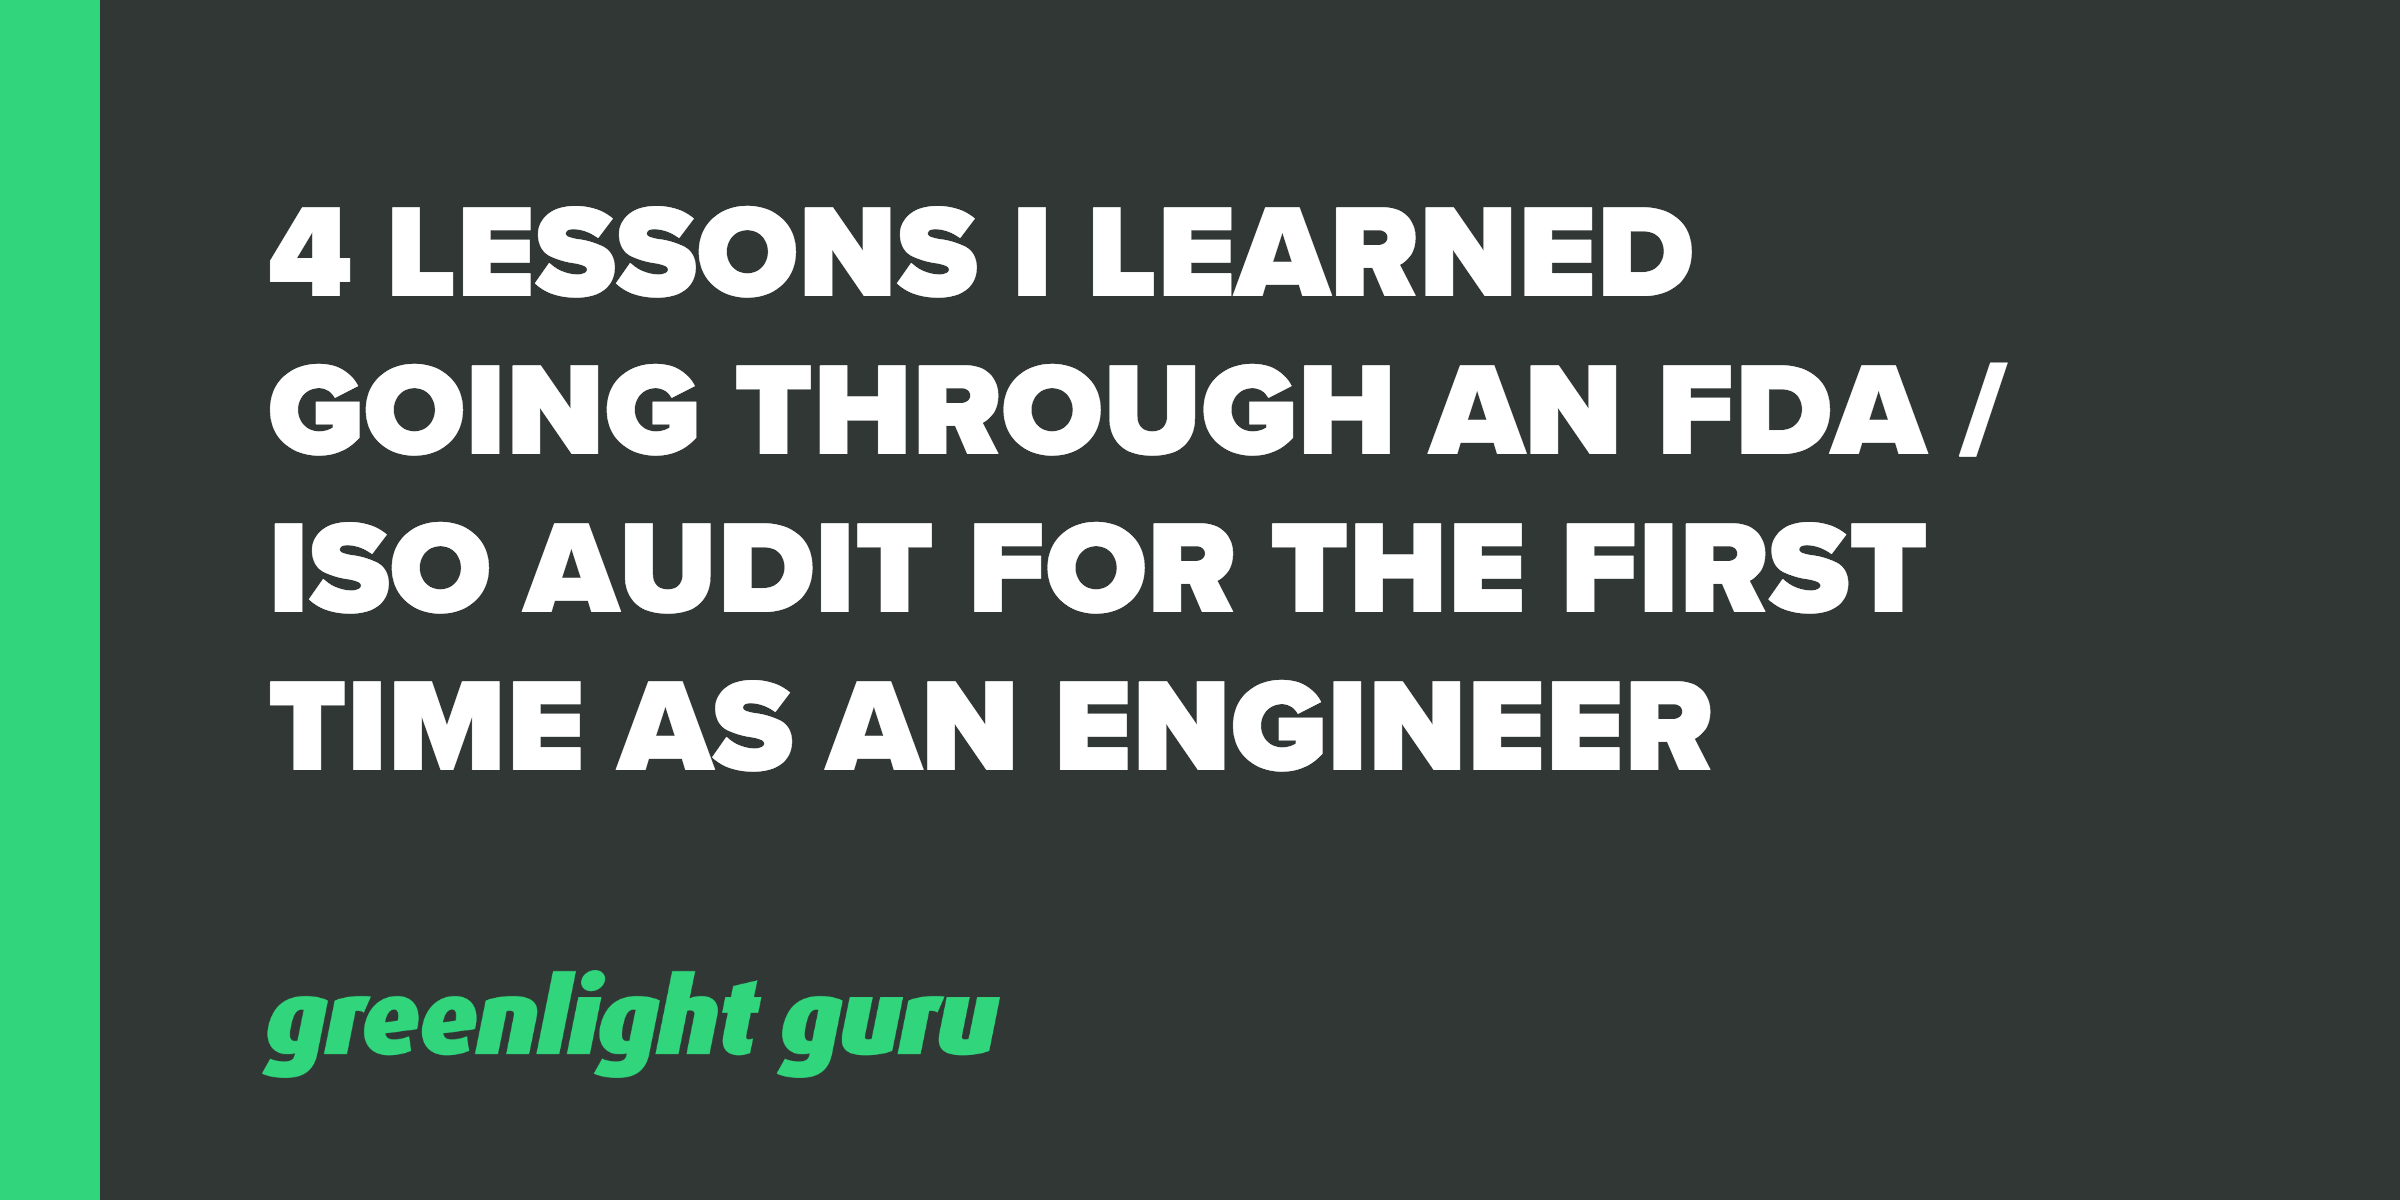 4 Lessons I Learned Going Through an FDA / ISO Audit for the First Time as an Engineer - Featured Image